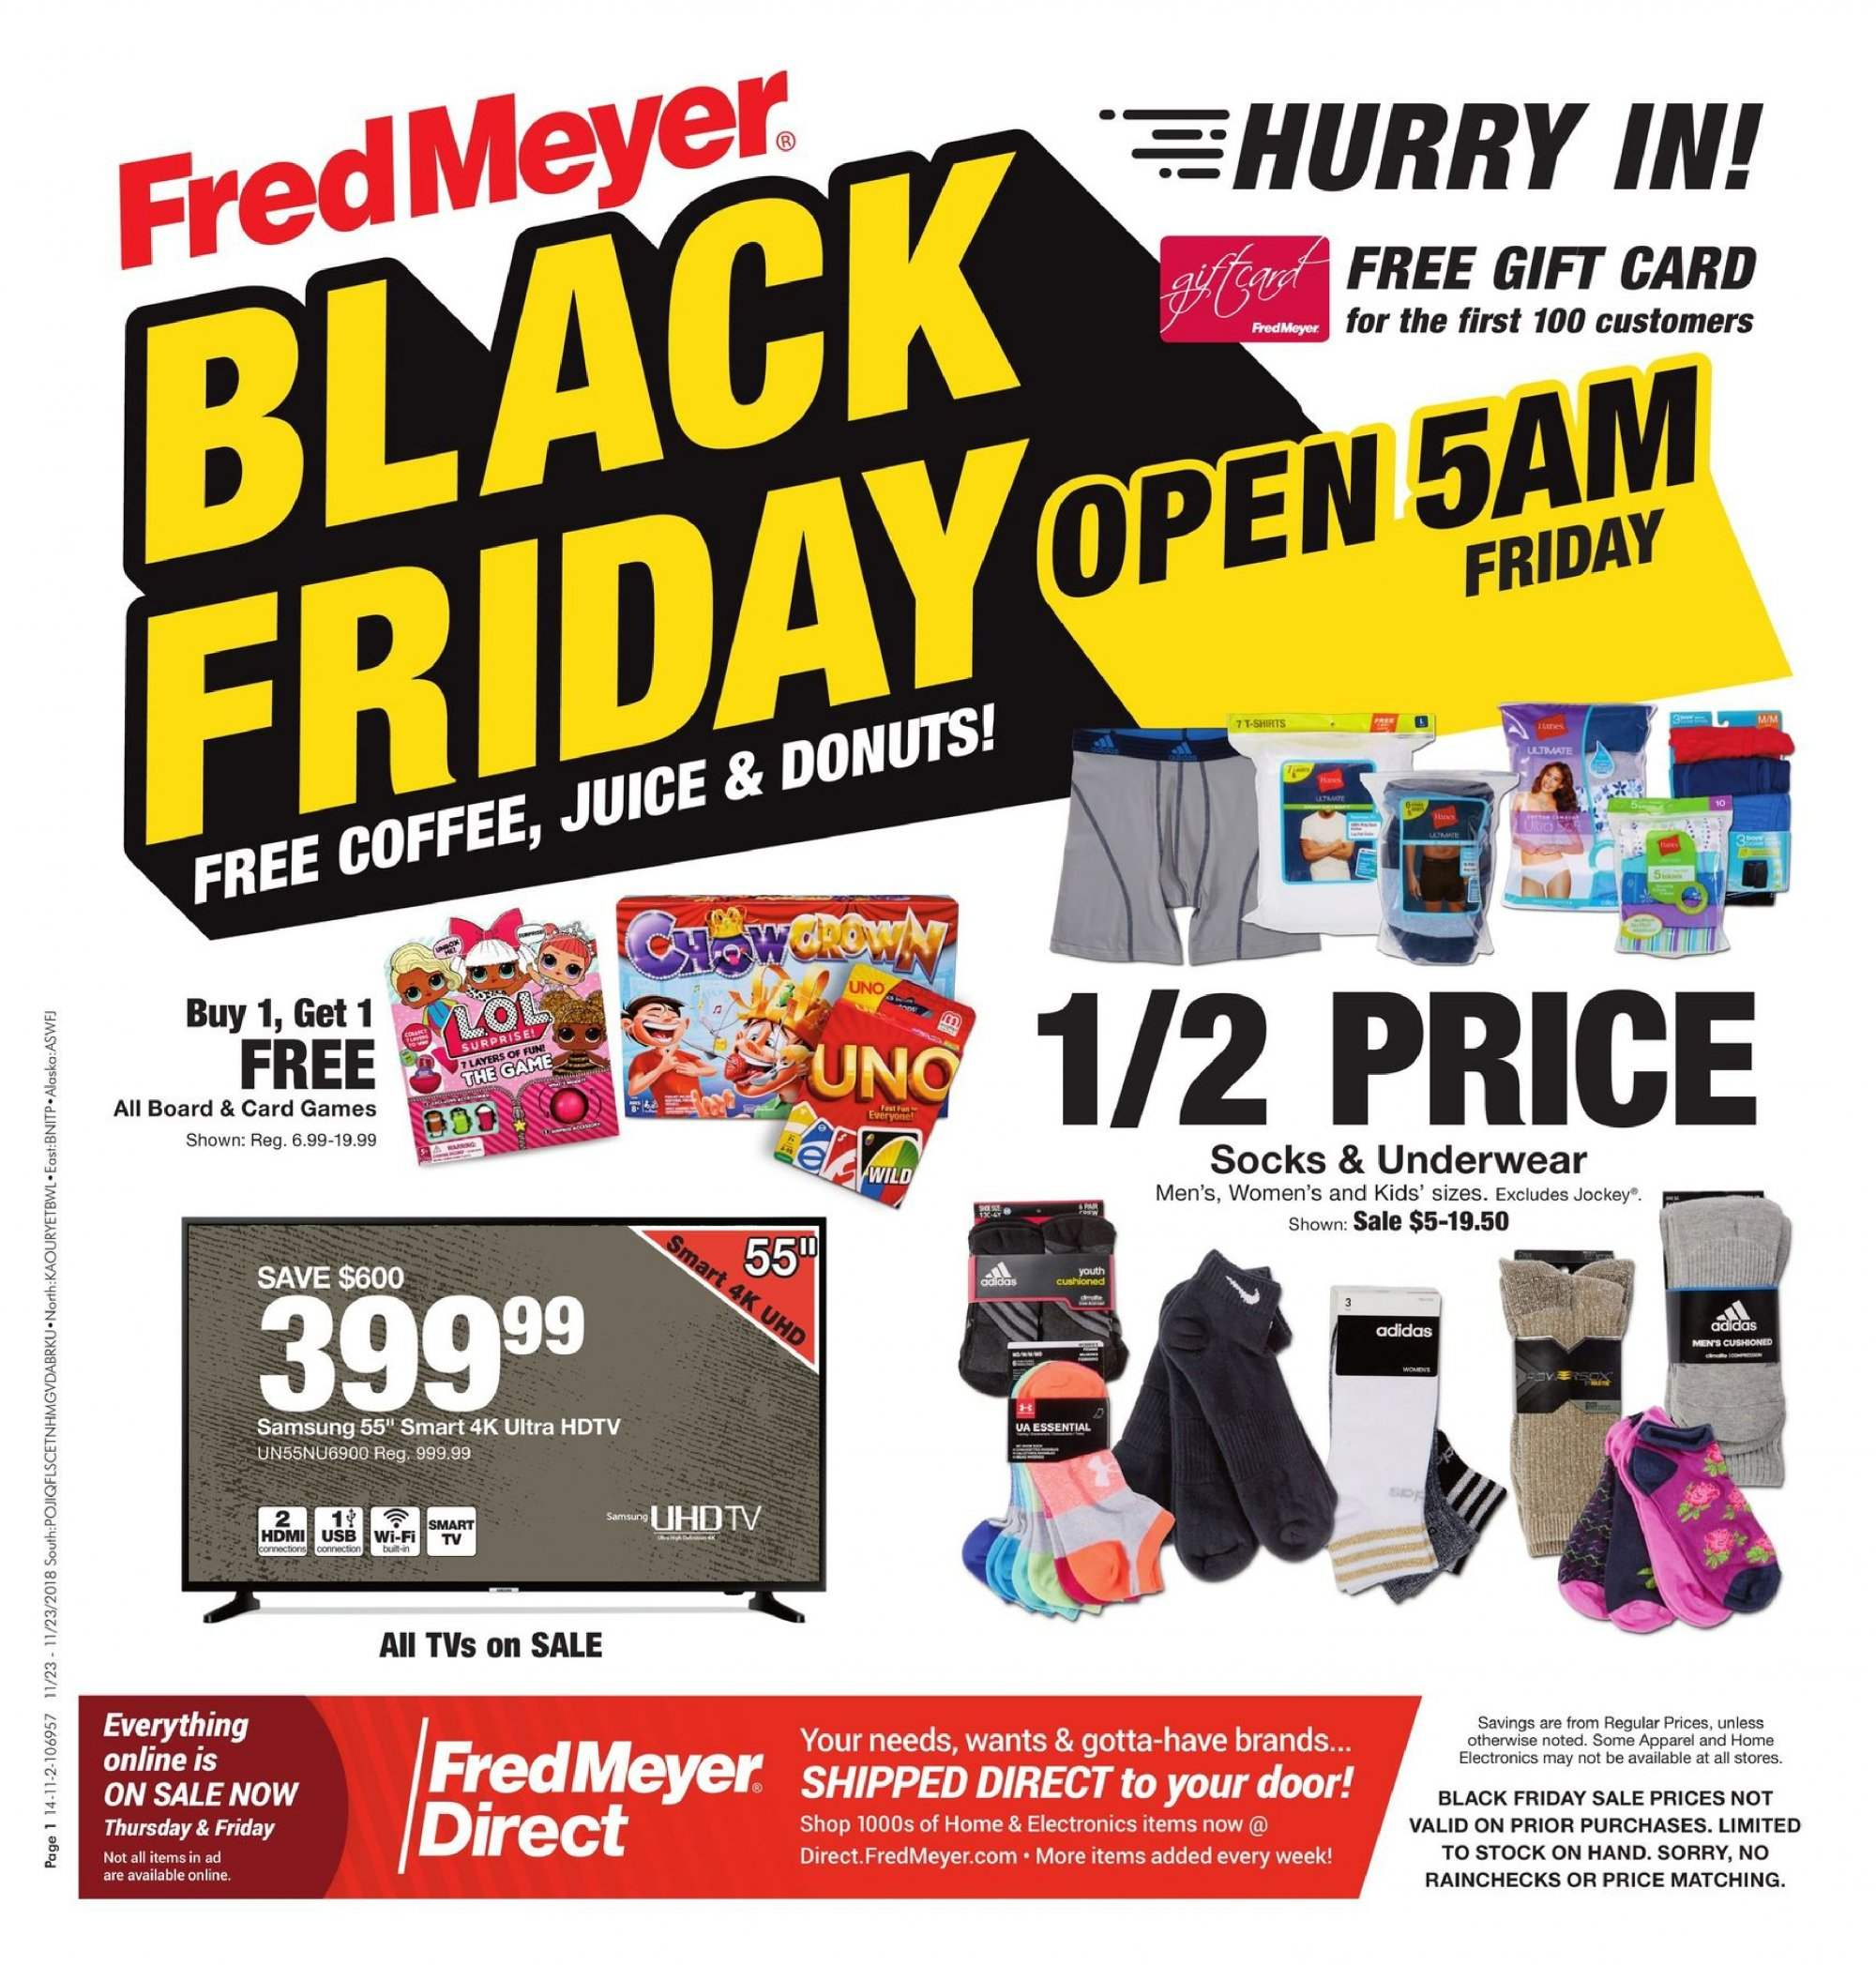 Fred Meyer Flyer - 11.23.2018 - 11.23.2018 - Sales products - donut, juice, coffee, Adidas, Samsung, HDTV, TV. Page 1.